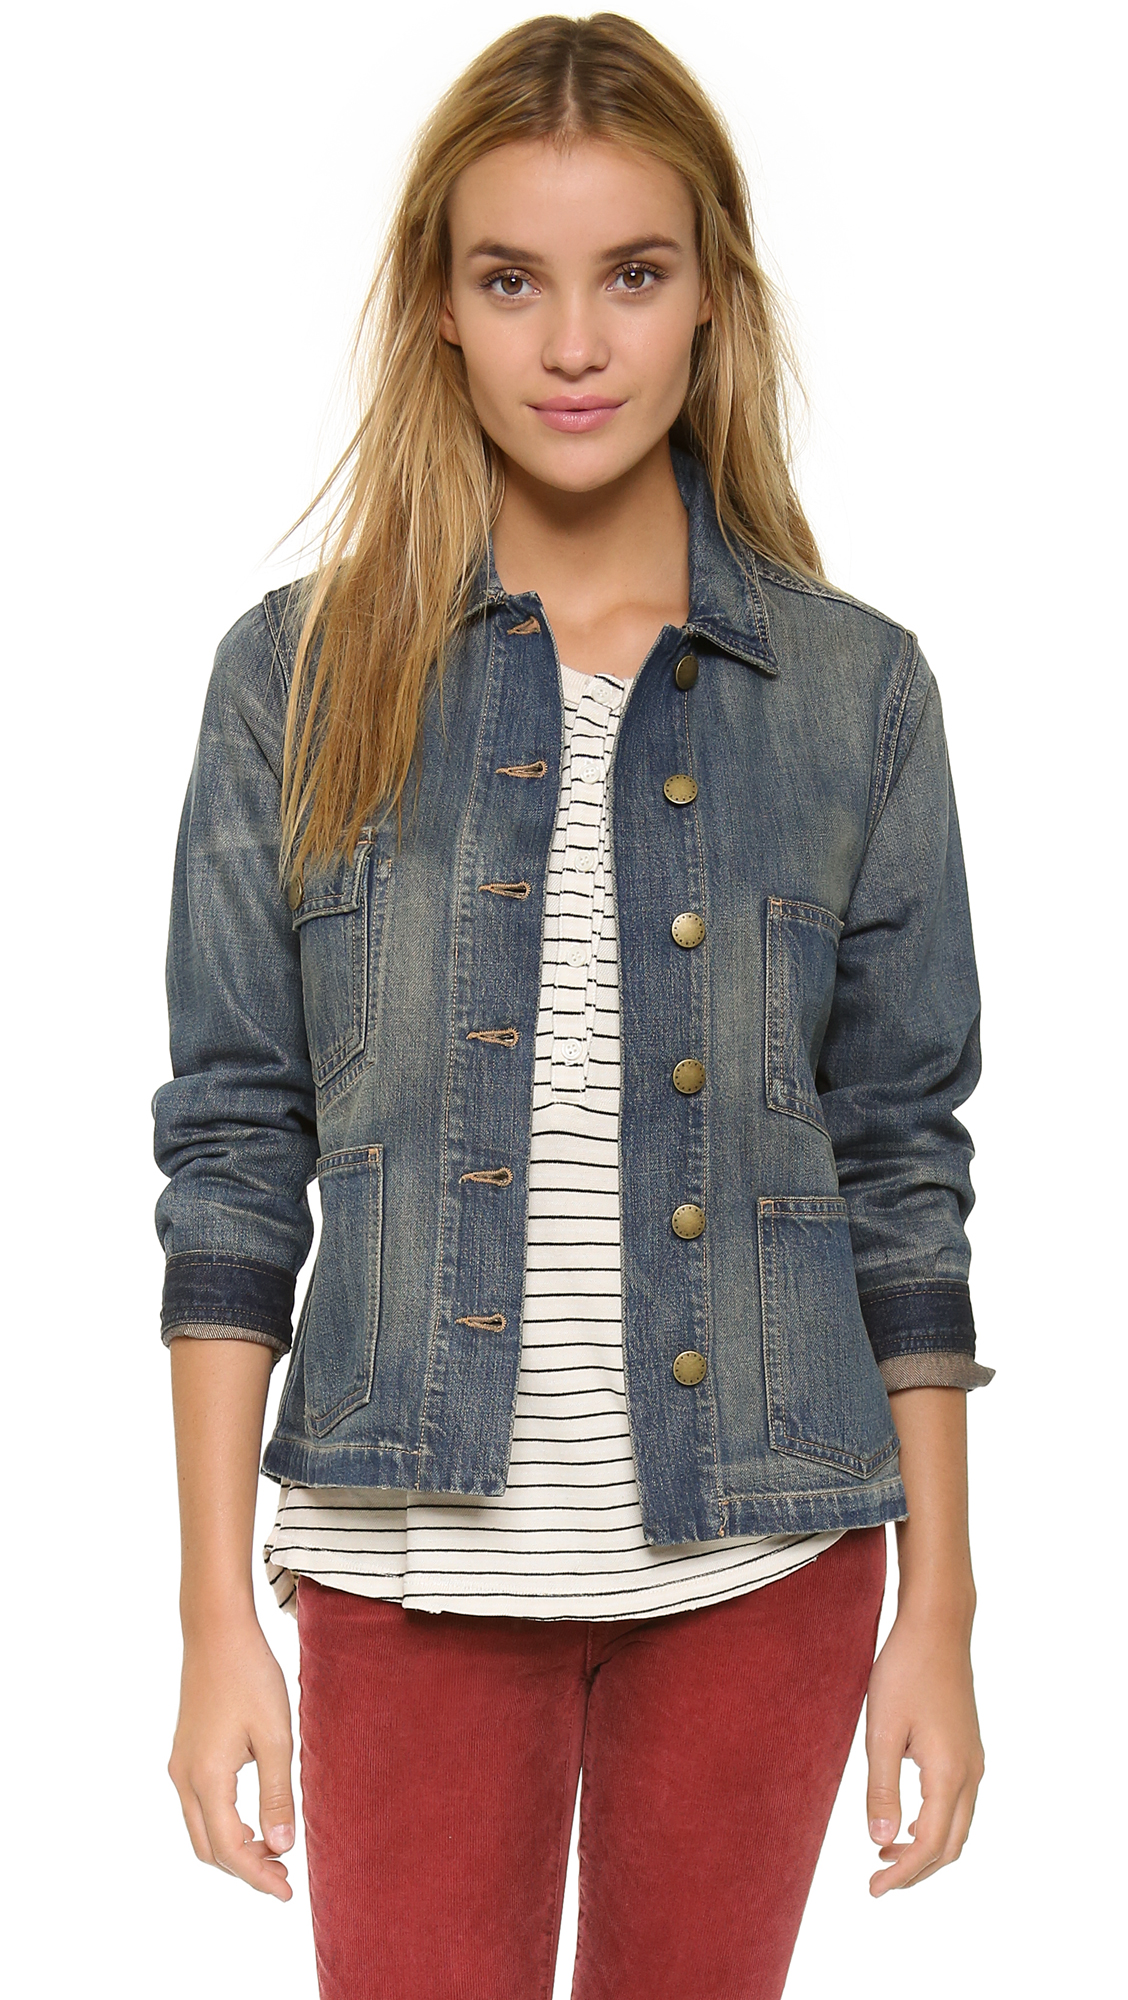 2016 Kot Ceket Modelleri ve Kombinleri 2016-Denim-Jackets-and-Coats-For-Women-16